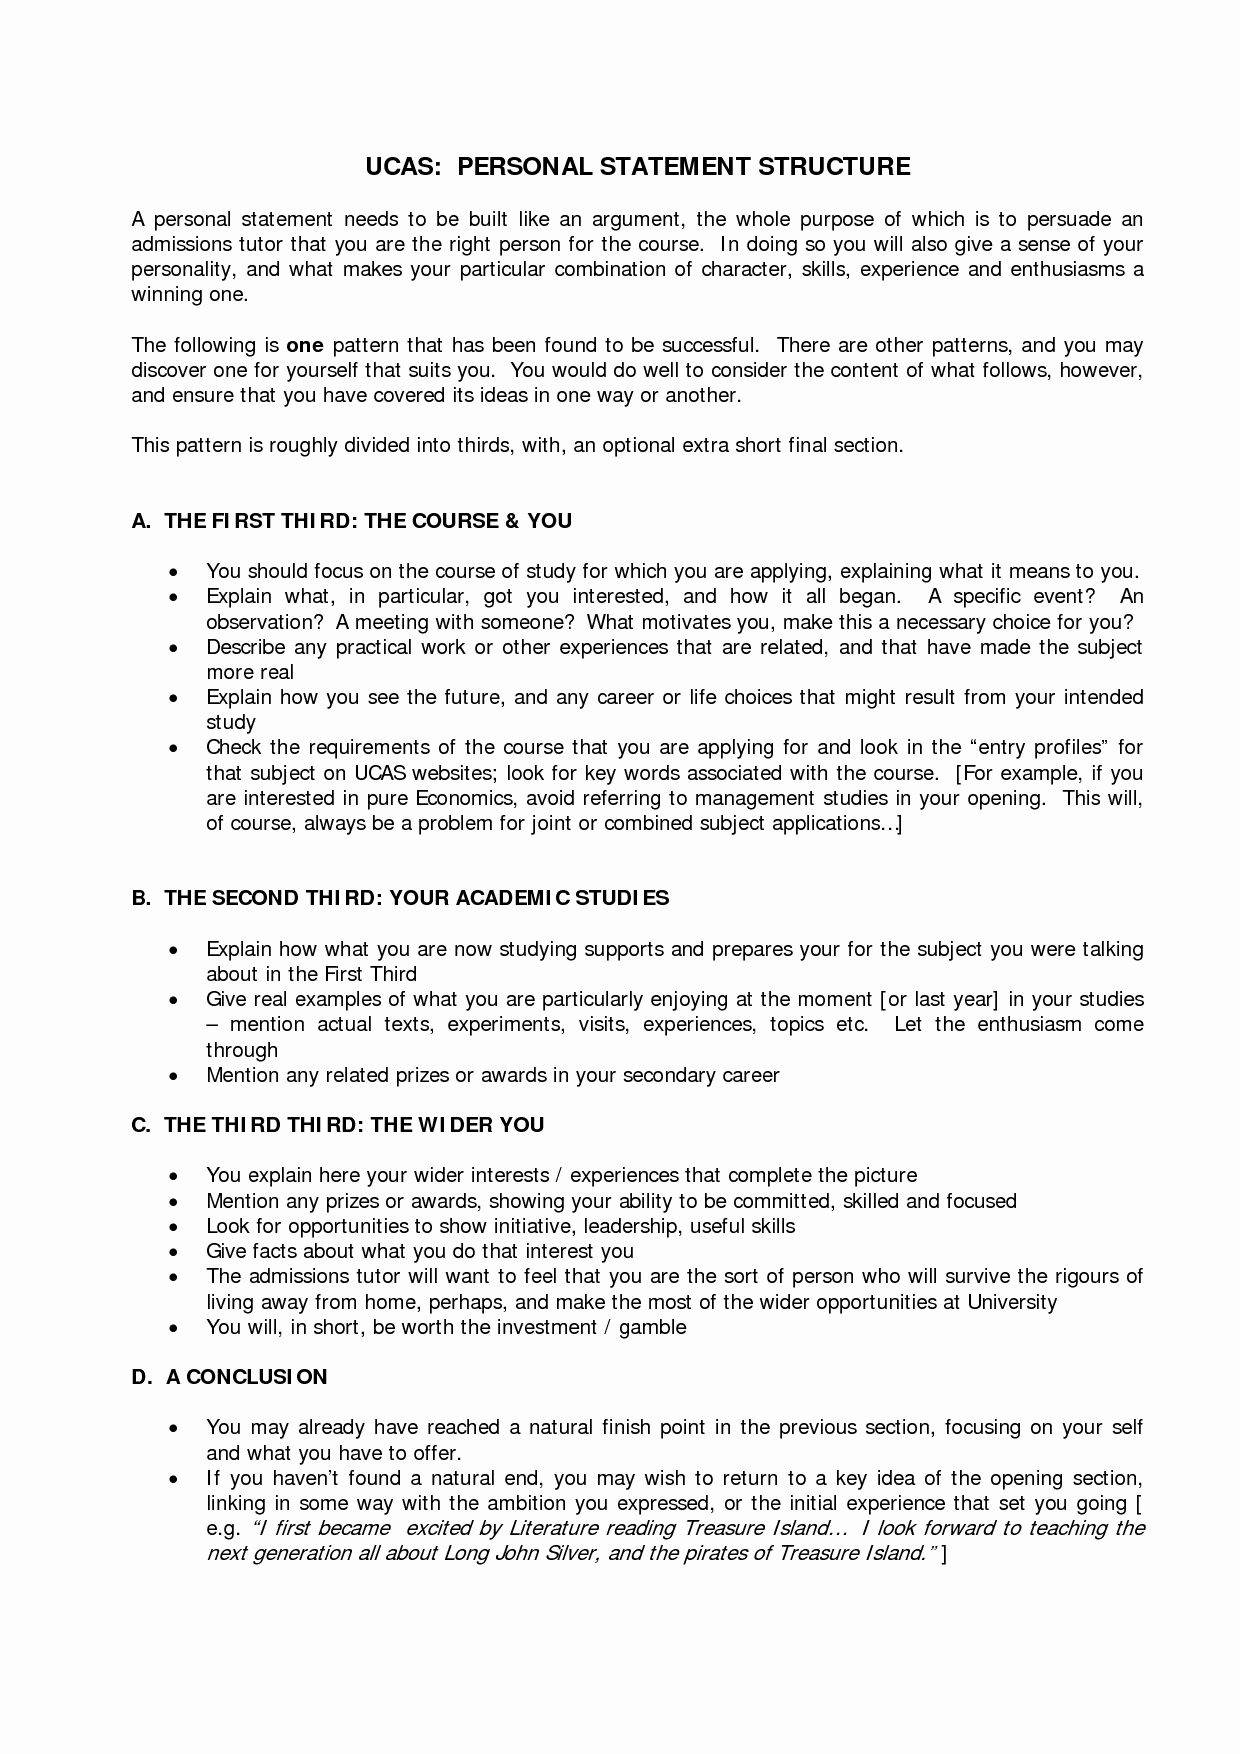 Personal Statement Template for College New Personal Statement Template Ucas Google Search